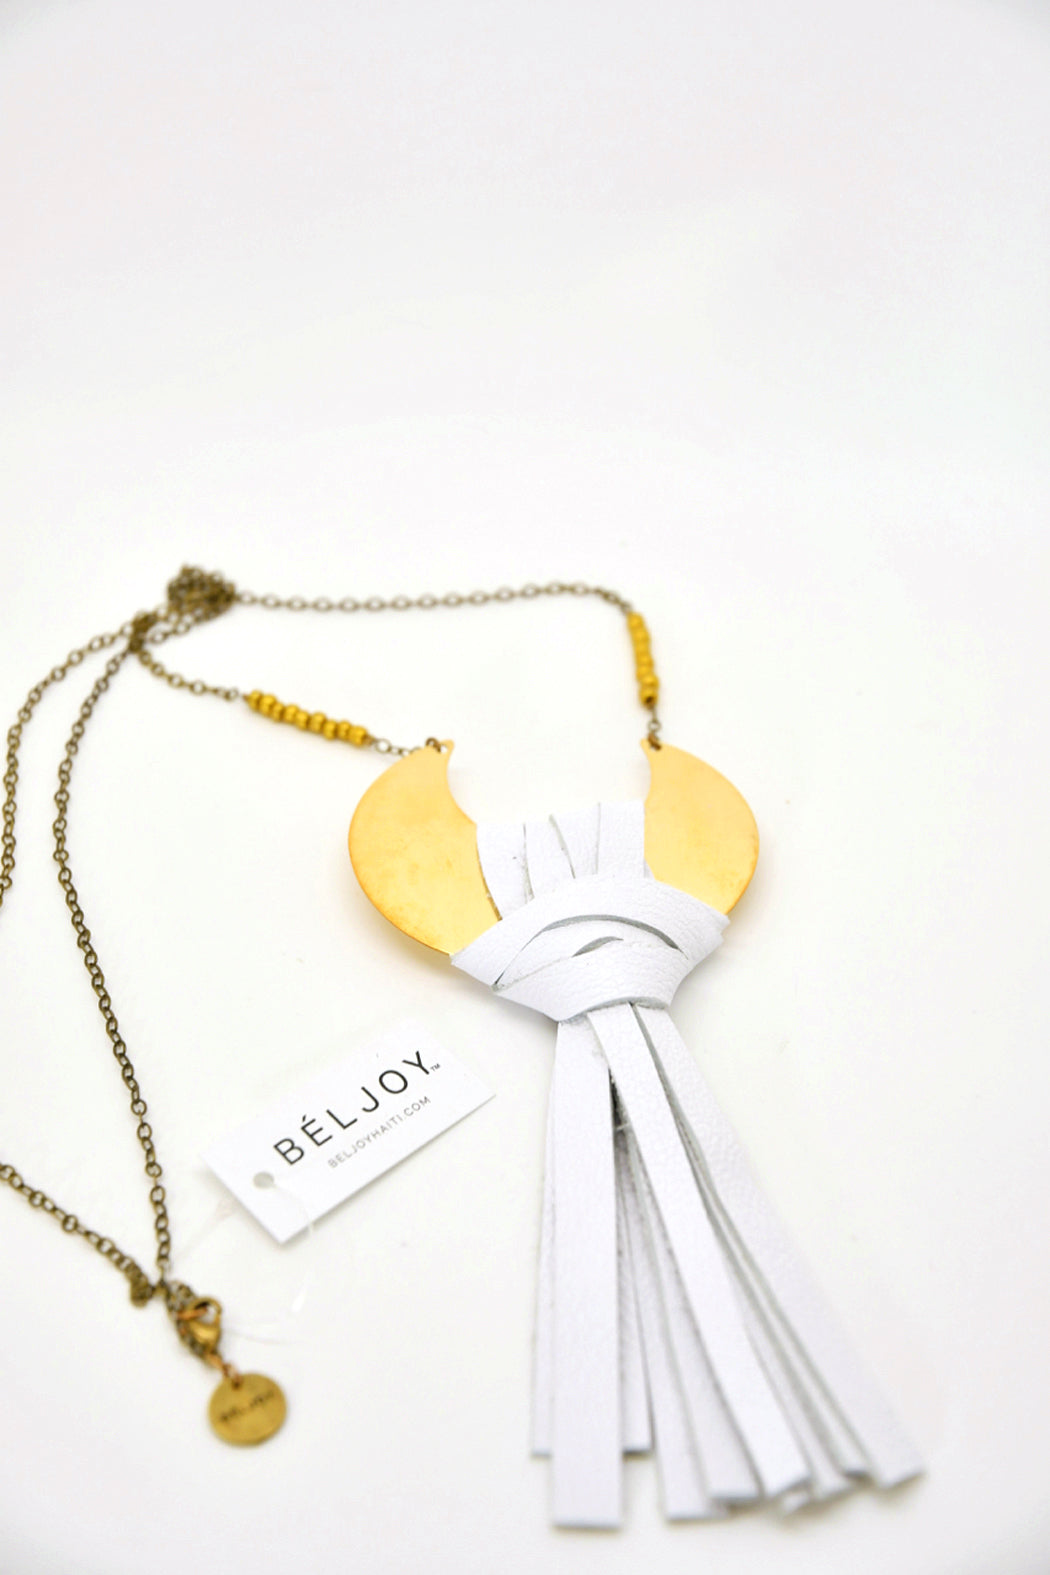 Beljoy Rihanna Necklace